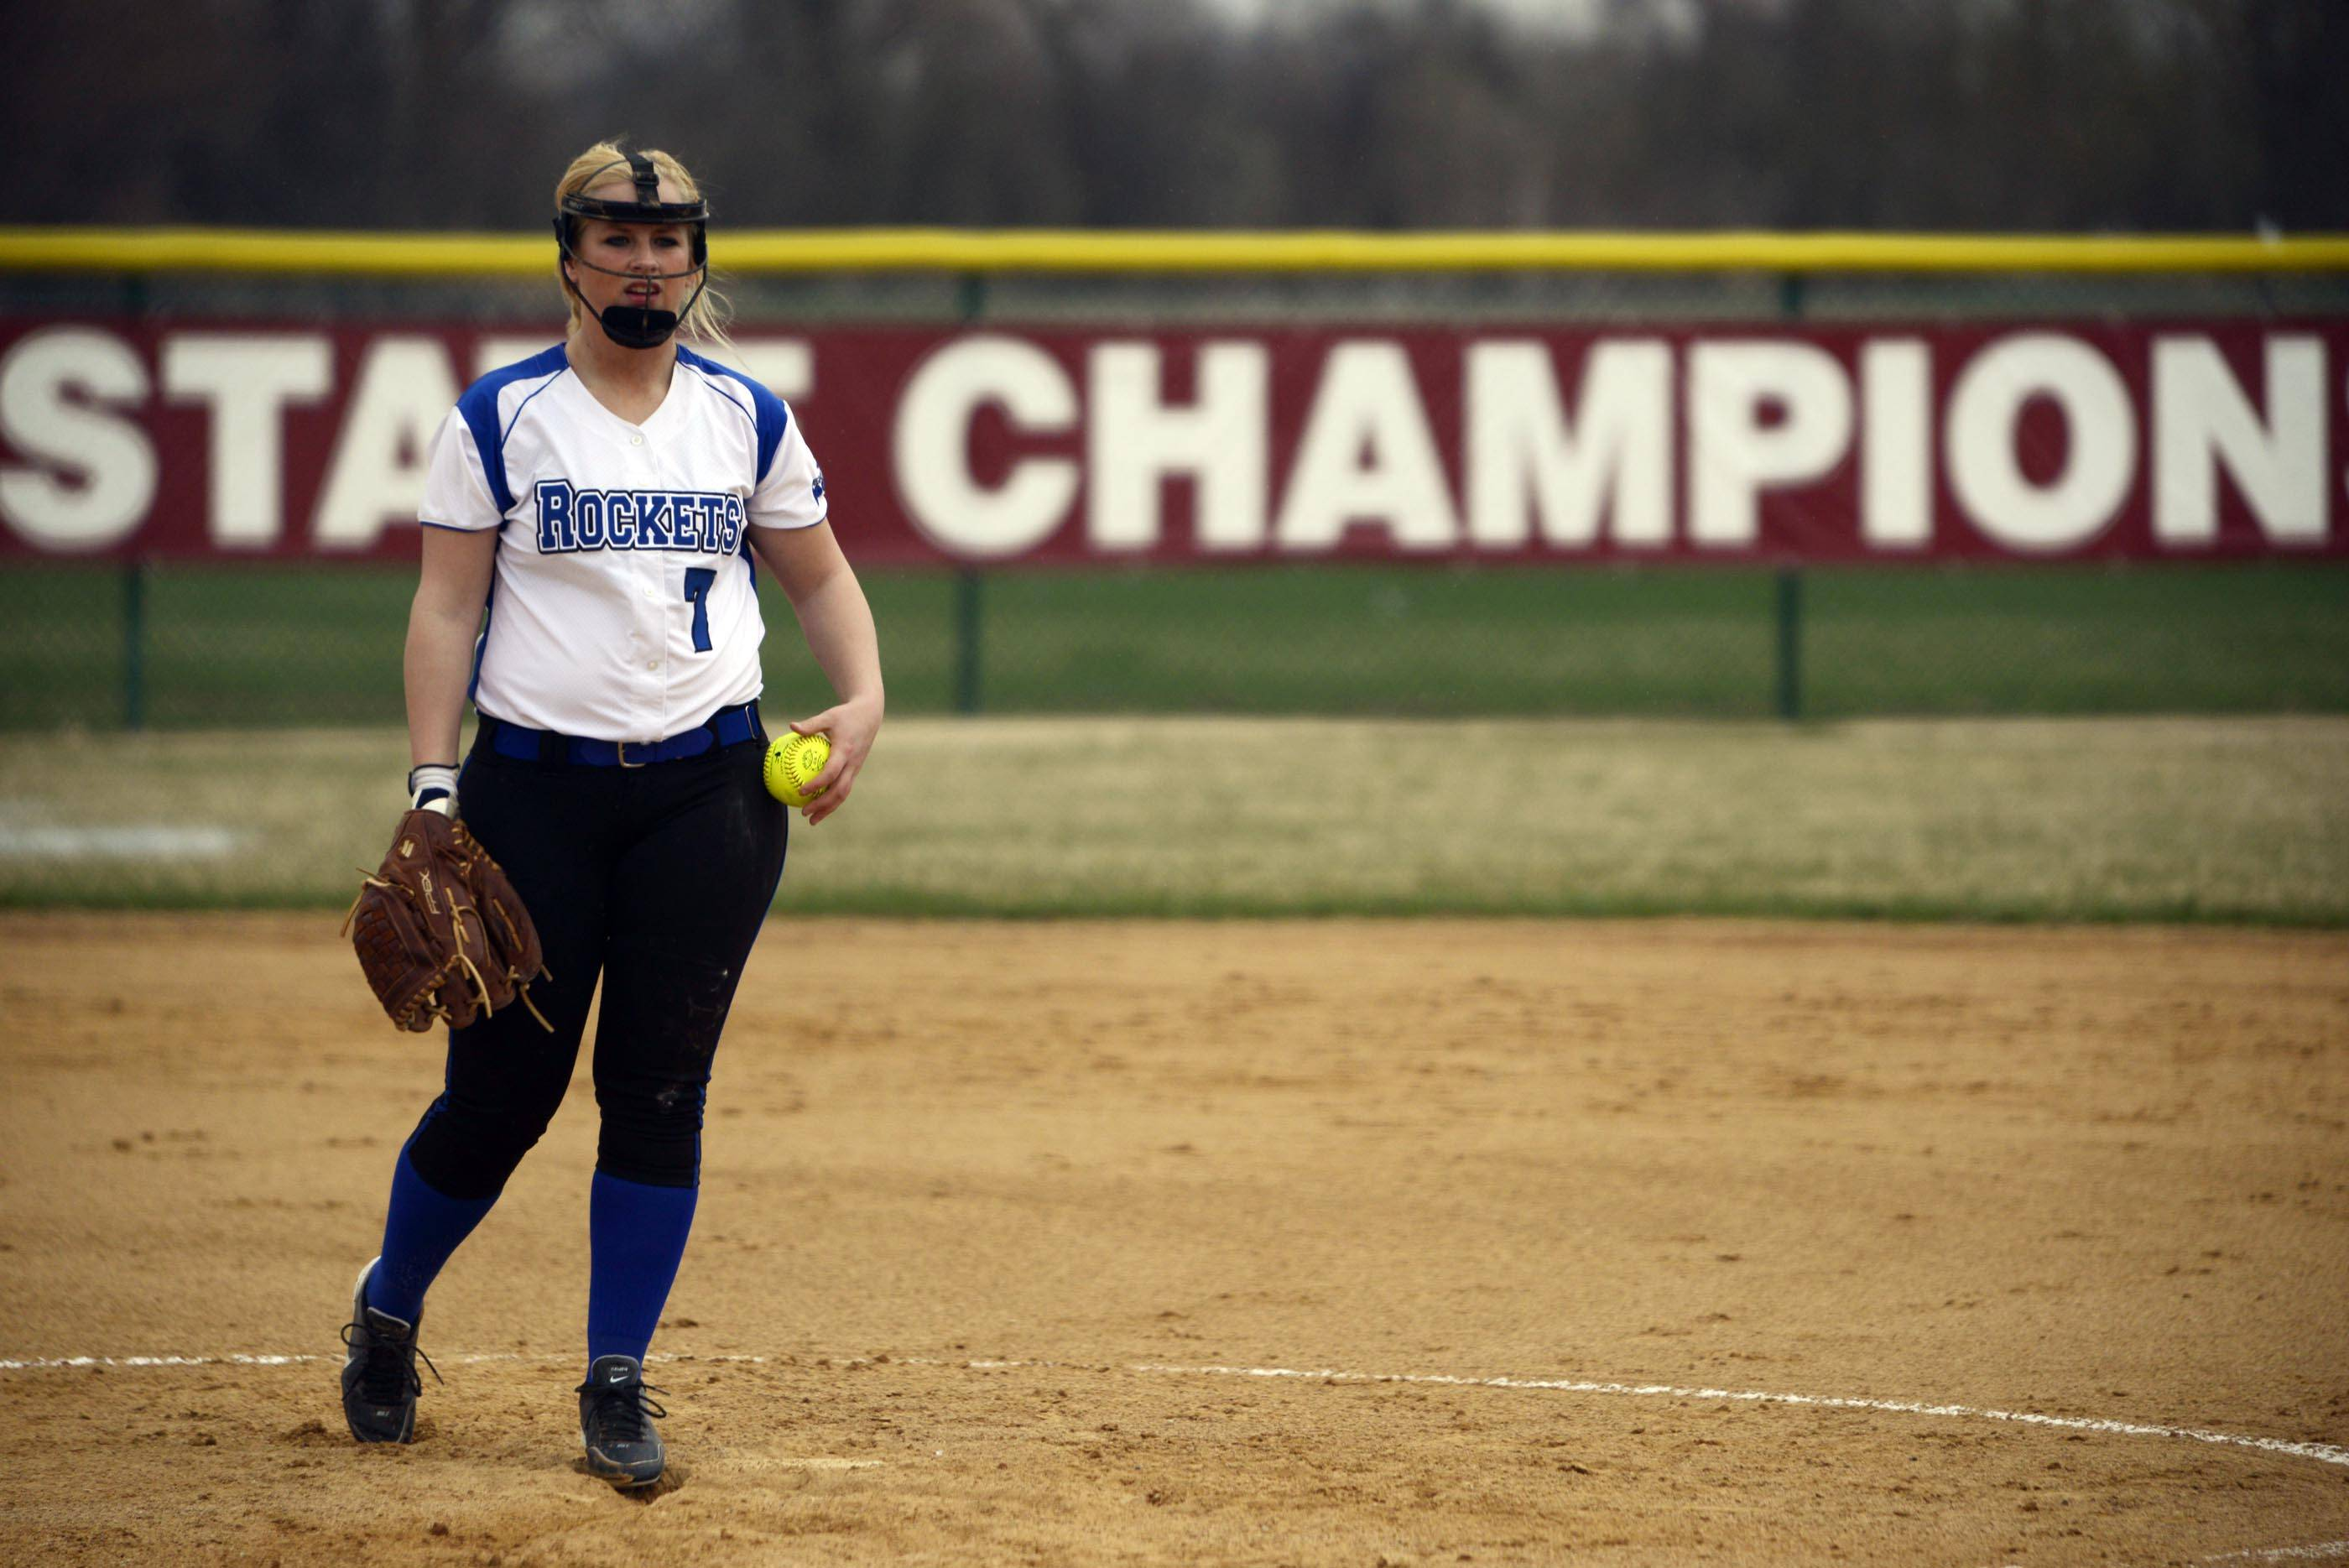 Burlington Central and senior Brooke Gaylord will take on Sterling Tuesday in the Class 3A Marengo sectional semifinals.